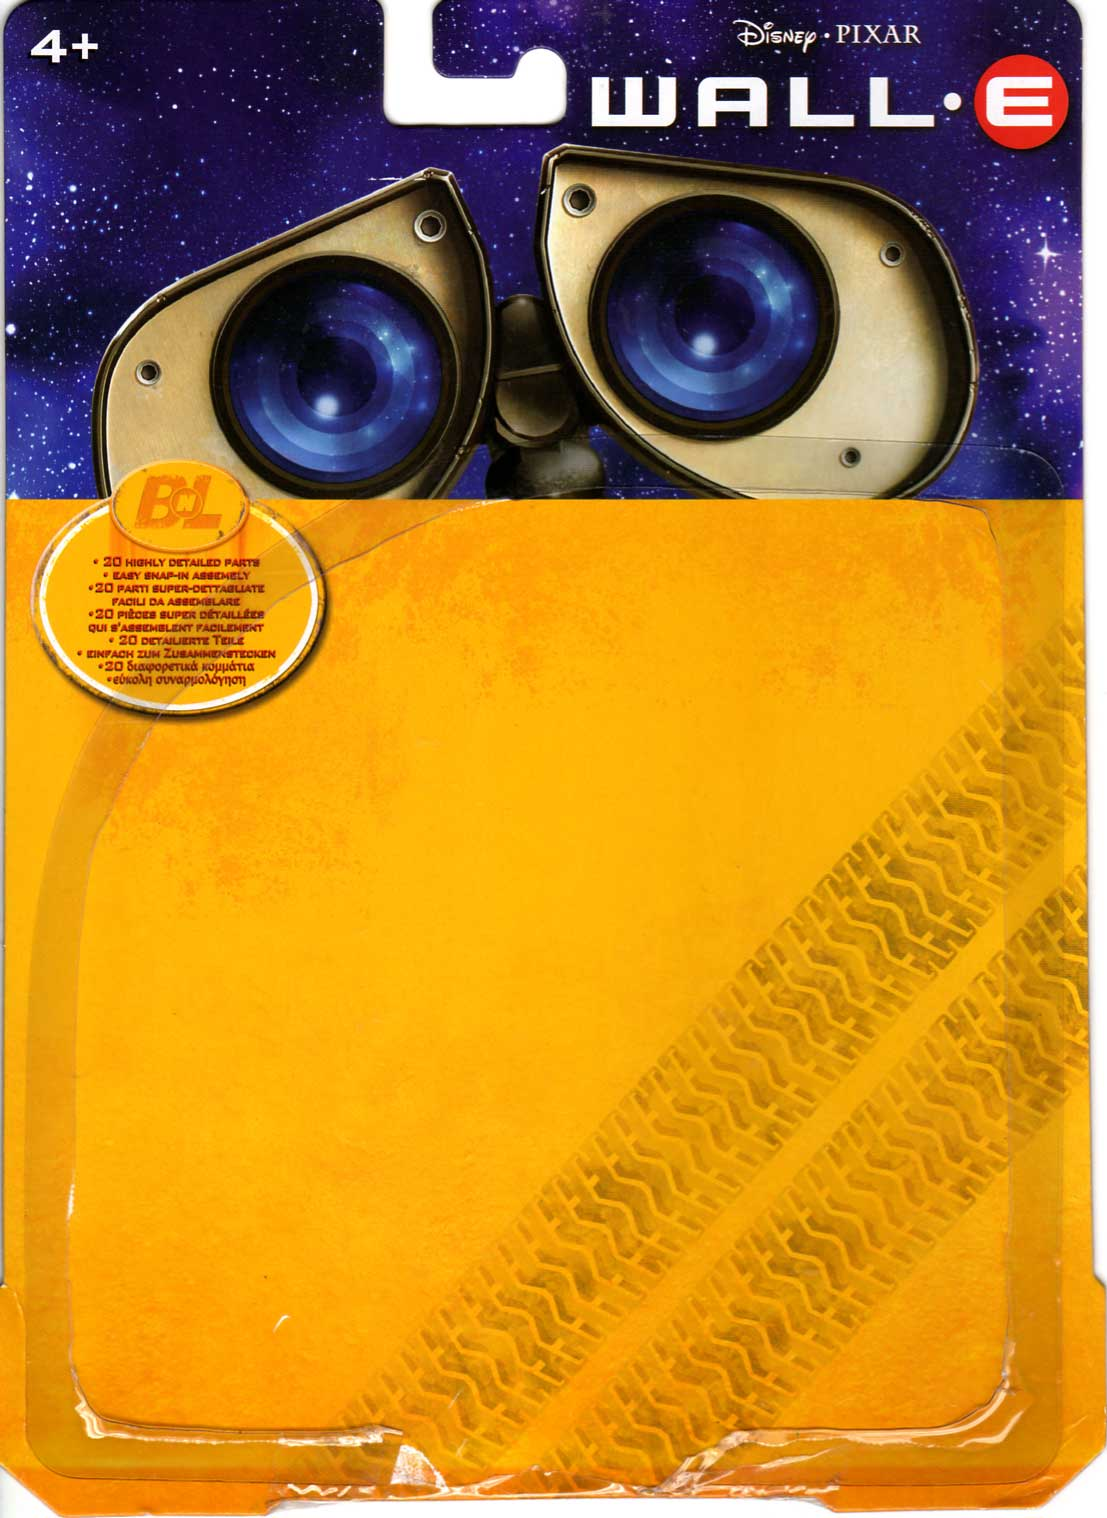 U-Repair Wall-E (2008) Packaging face ouvert